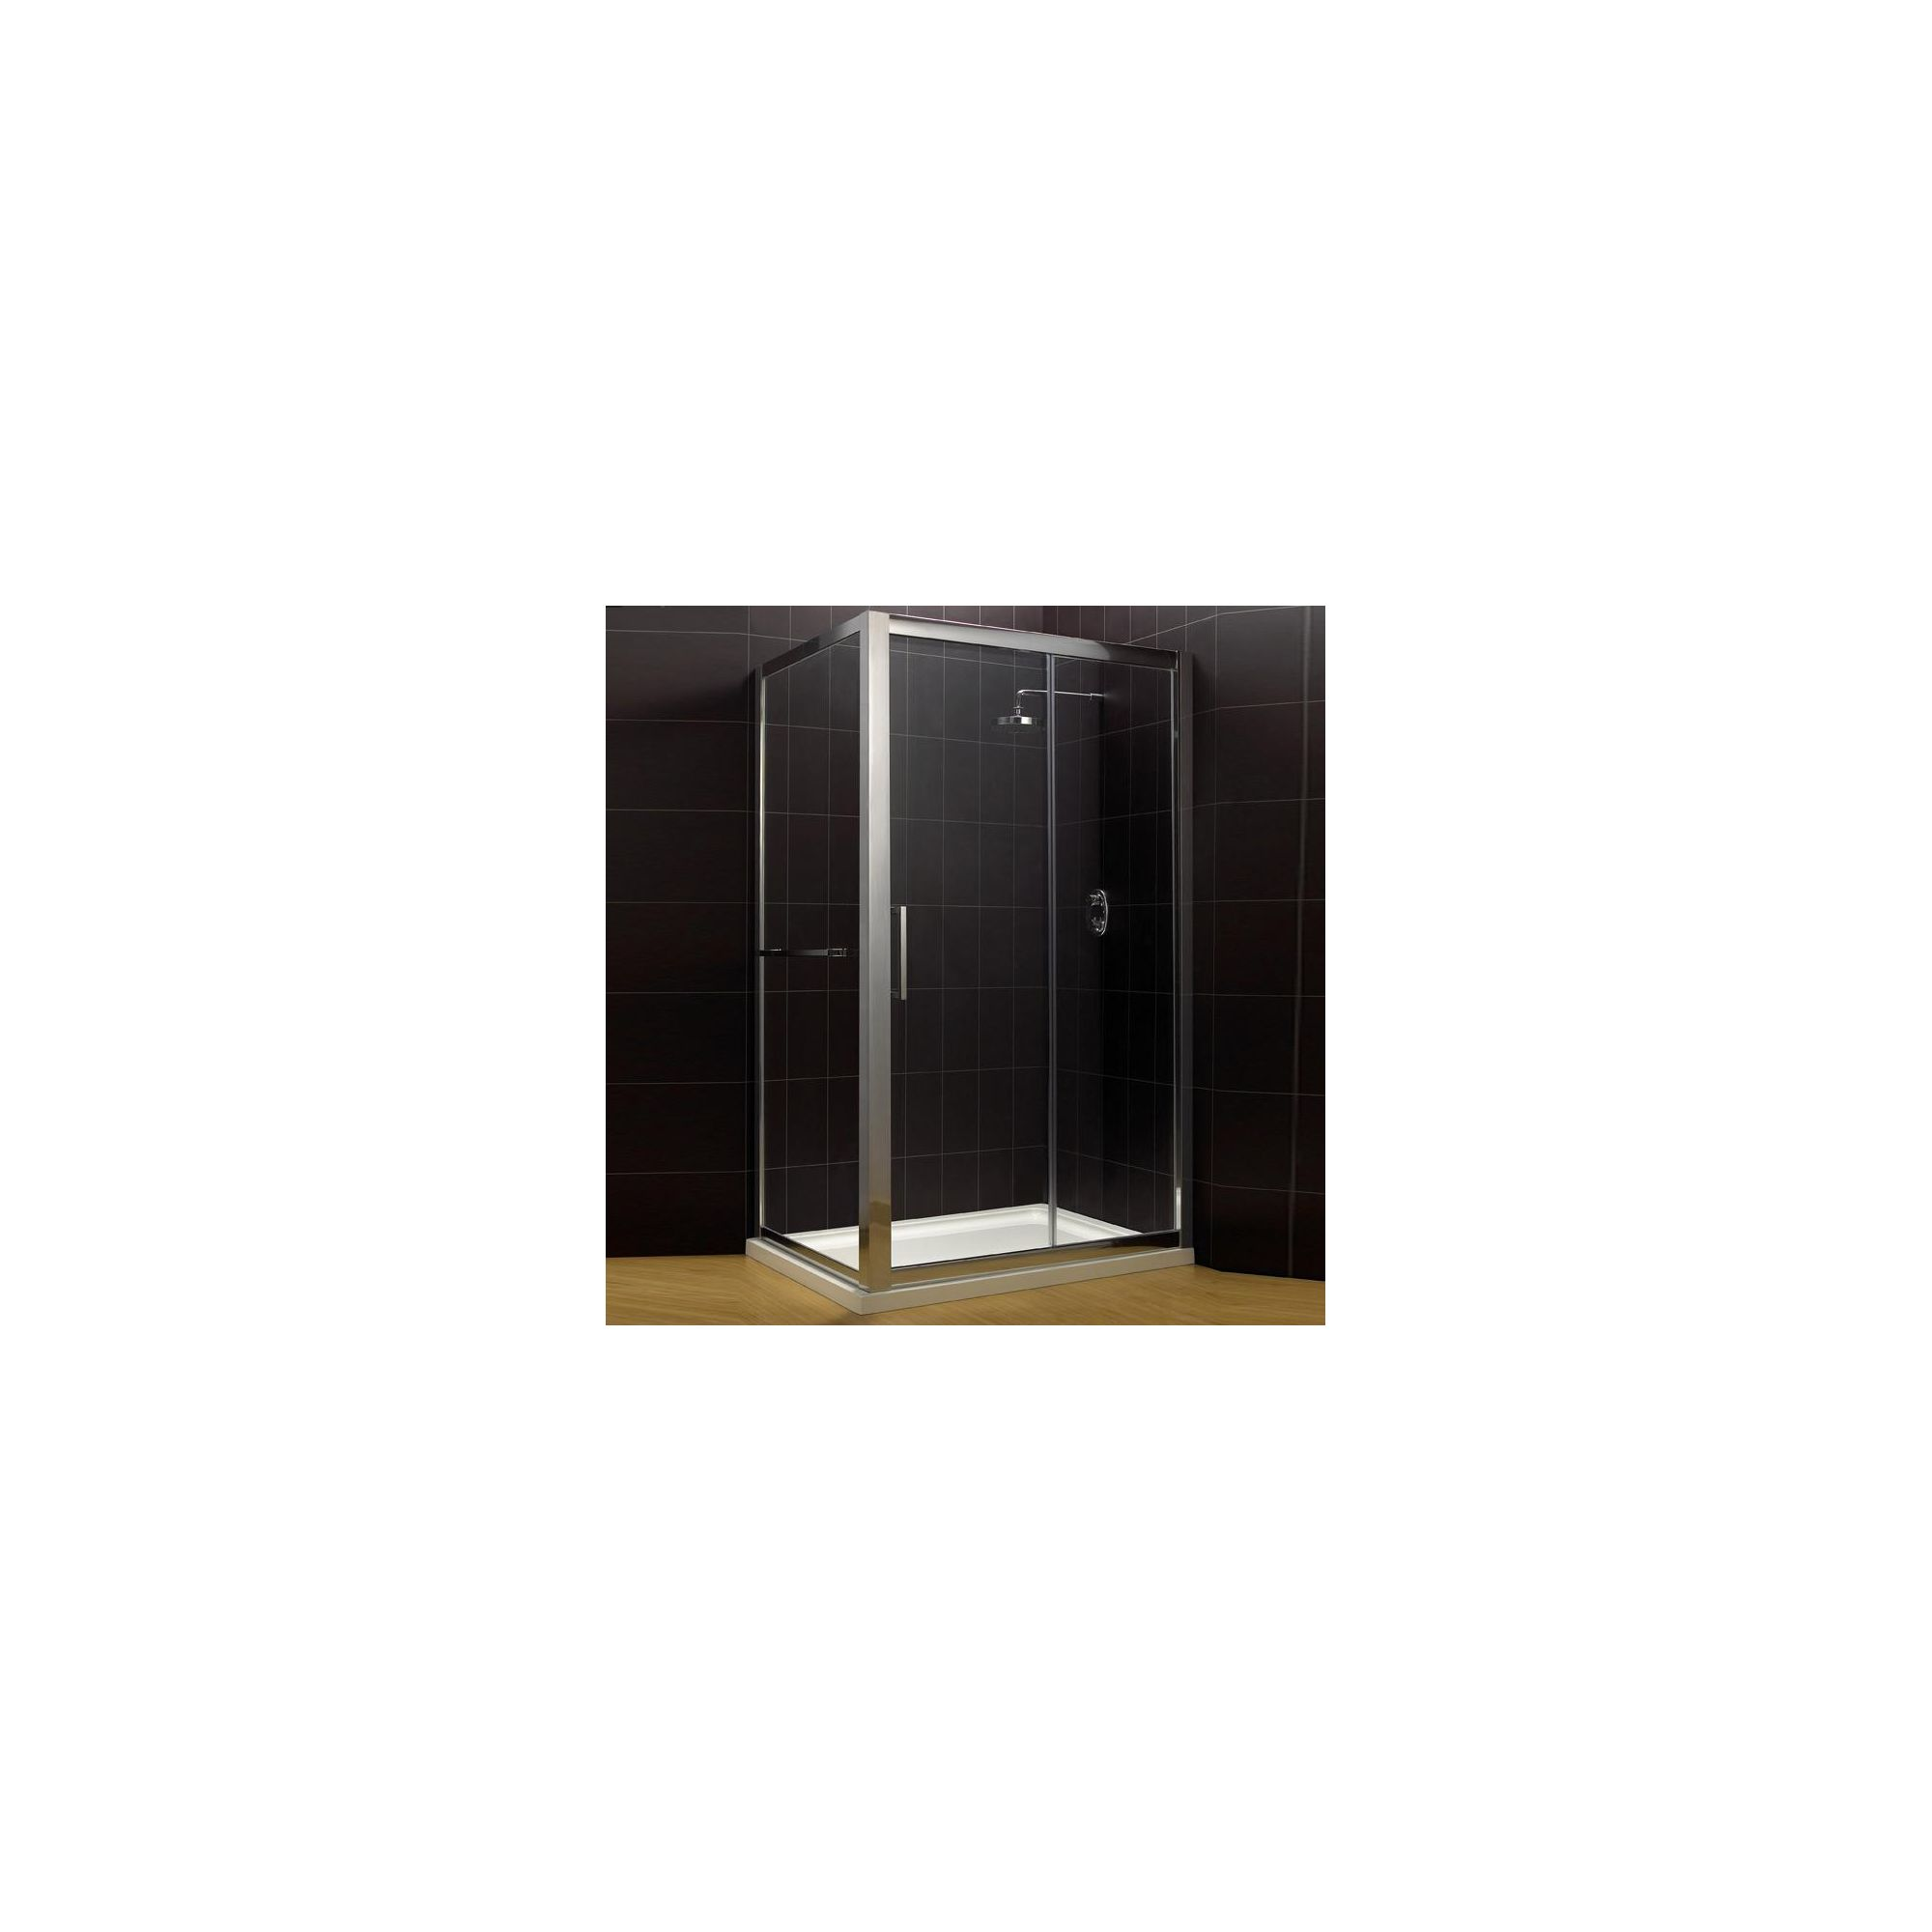 Duchy Supreme Silver Sliding Door Shower Enclosure with Towel Rail, 1700mm x 900mm, Standard Tray, 8mm Glass at Tesco Direct